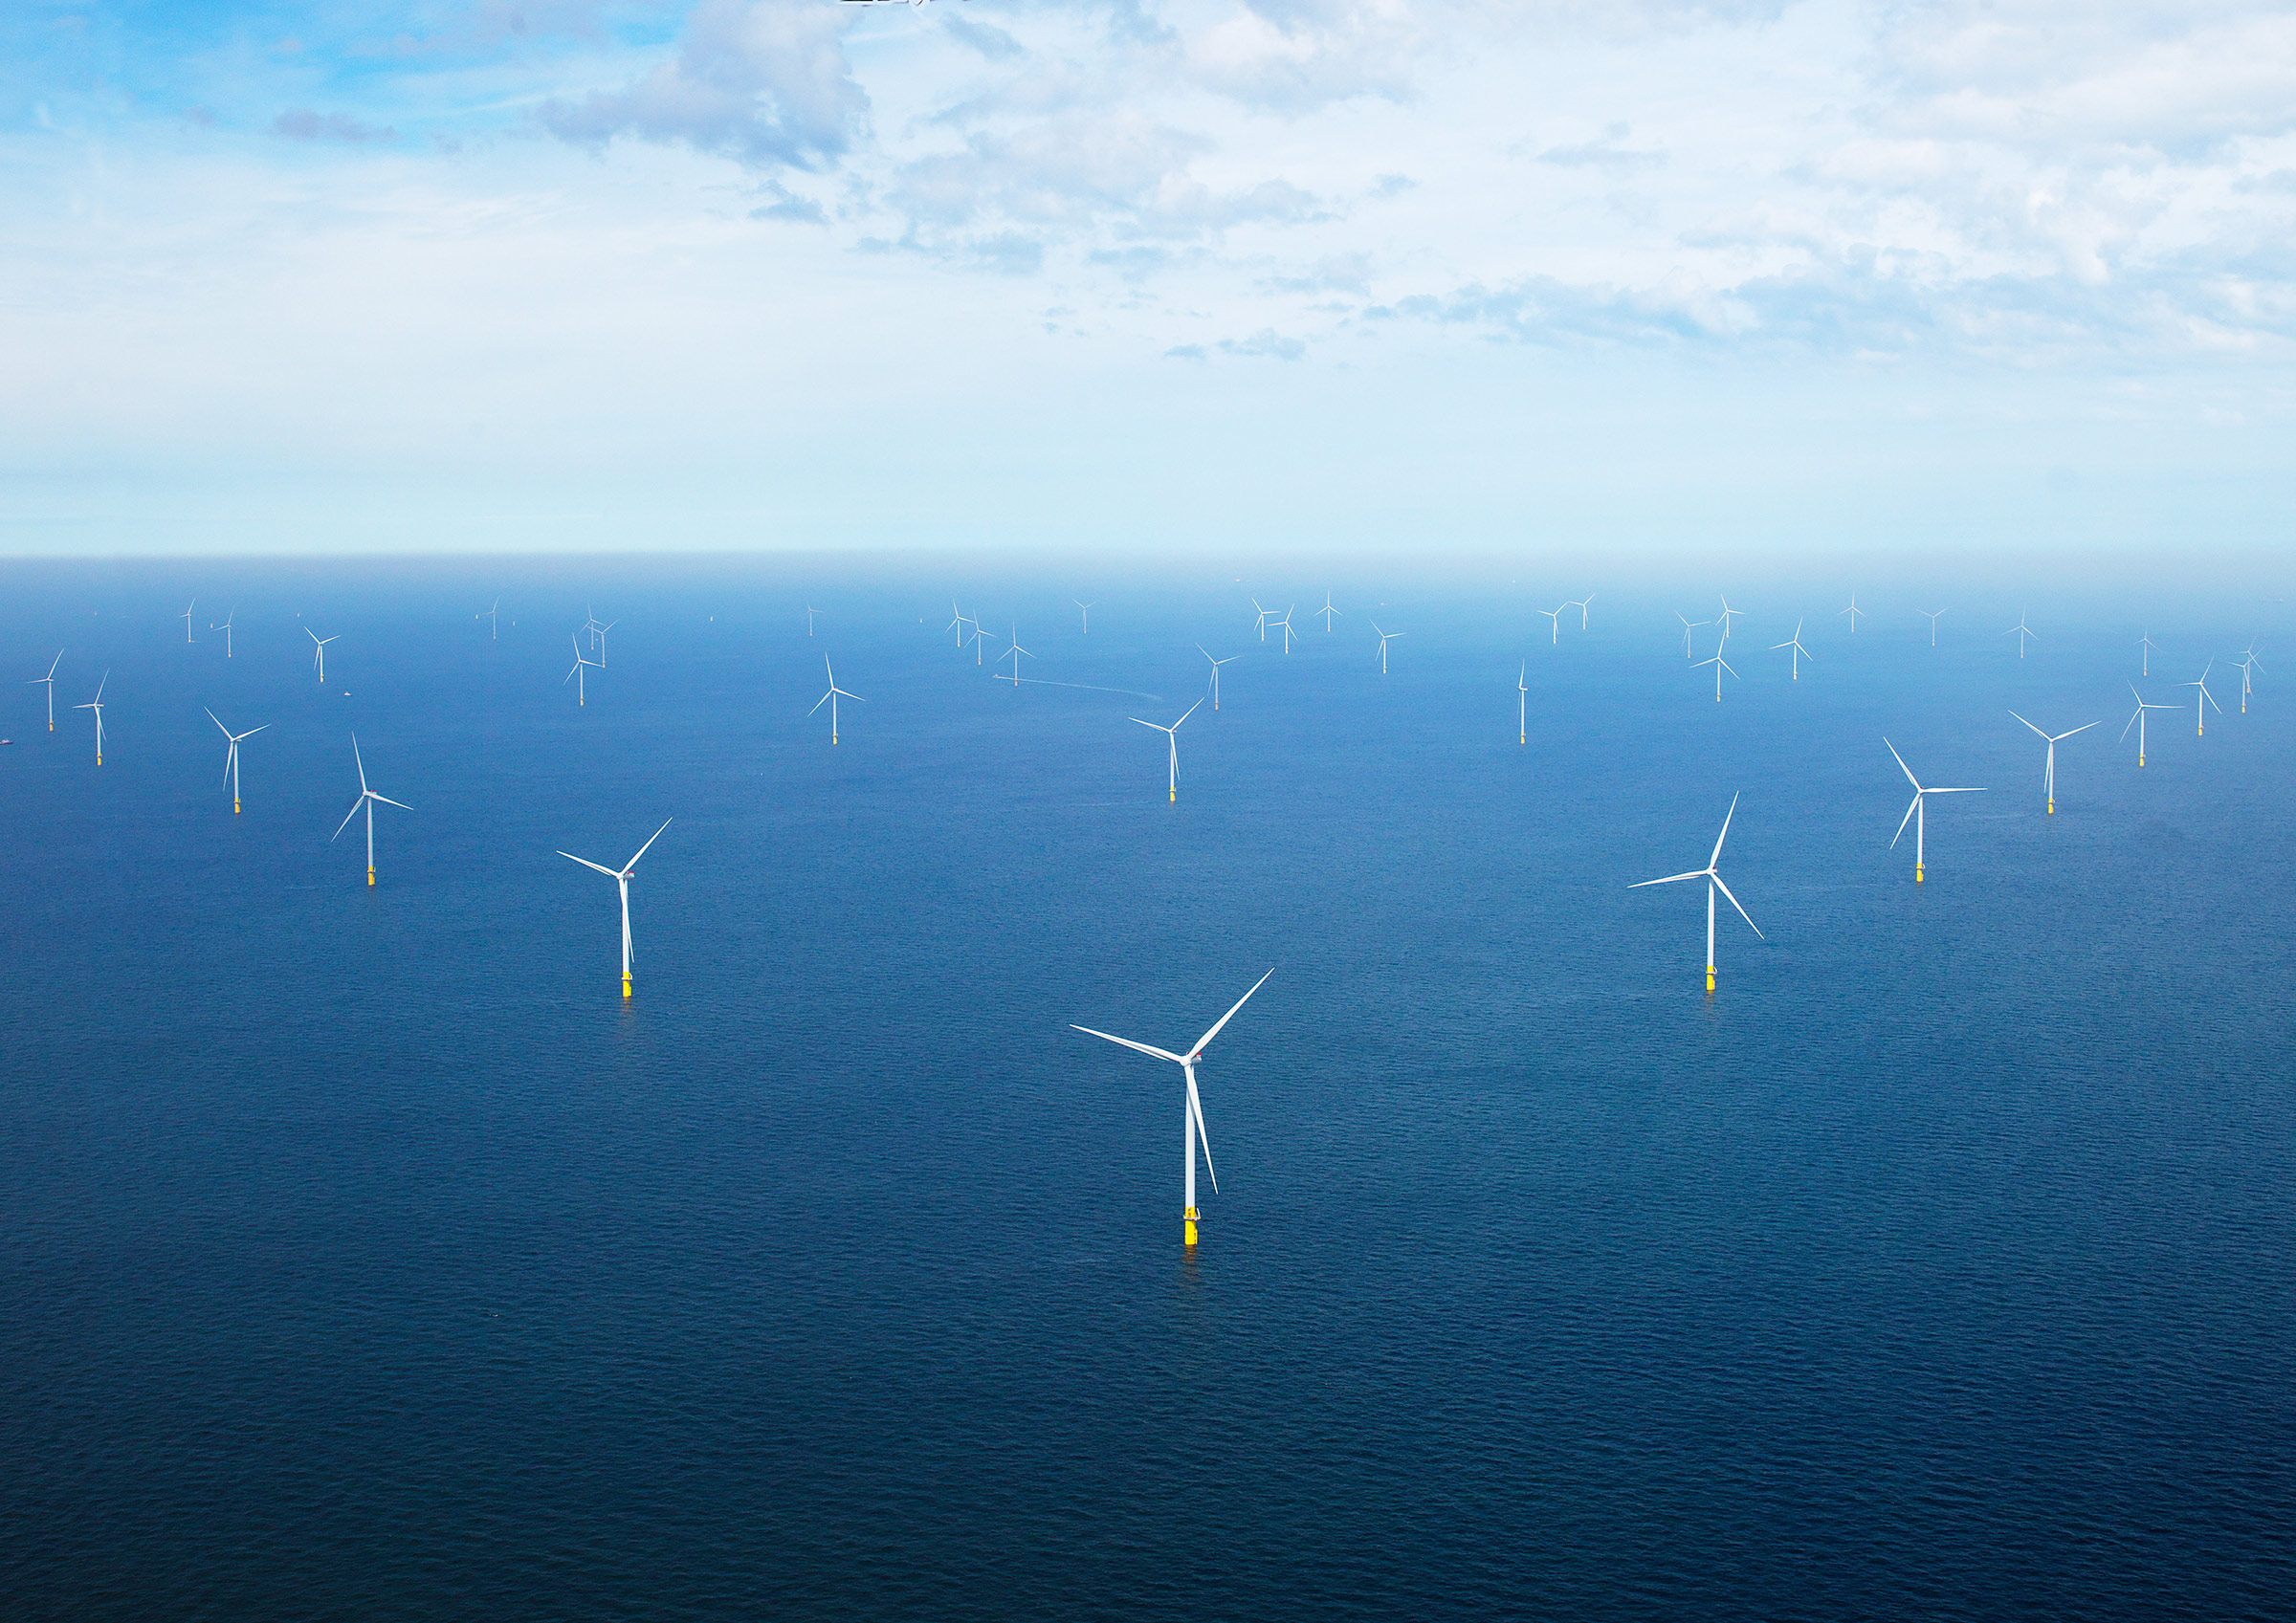 Orsted's offshore windfarm  Borssele 1 & 2,  located off the coast of the Dutch province of Zeeland.